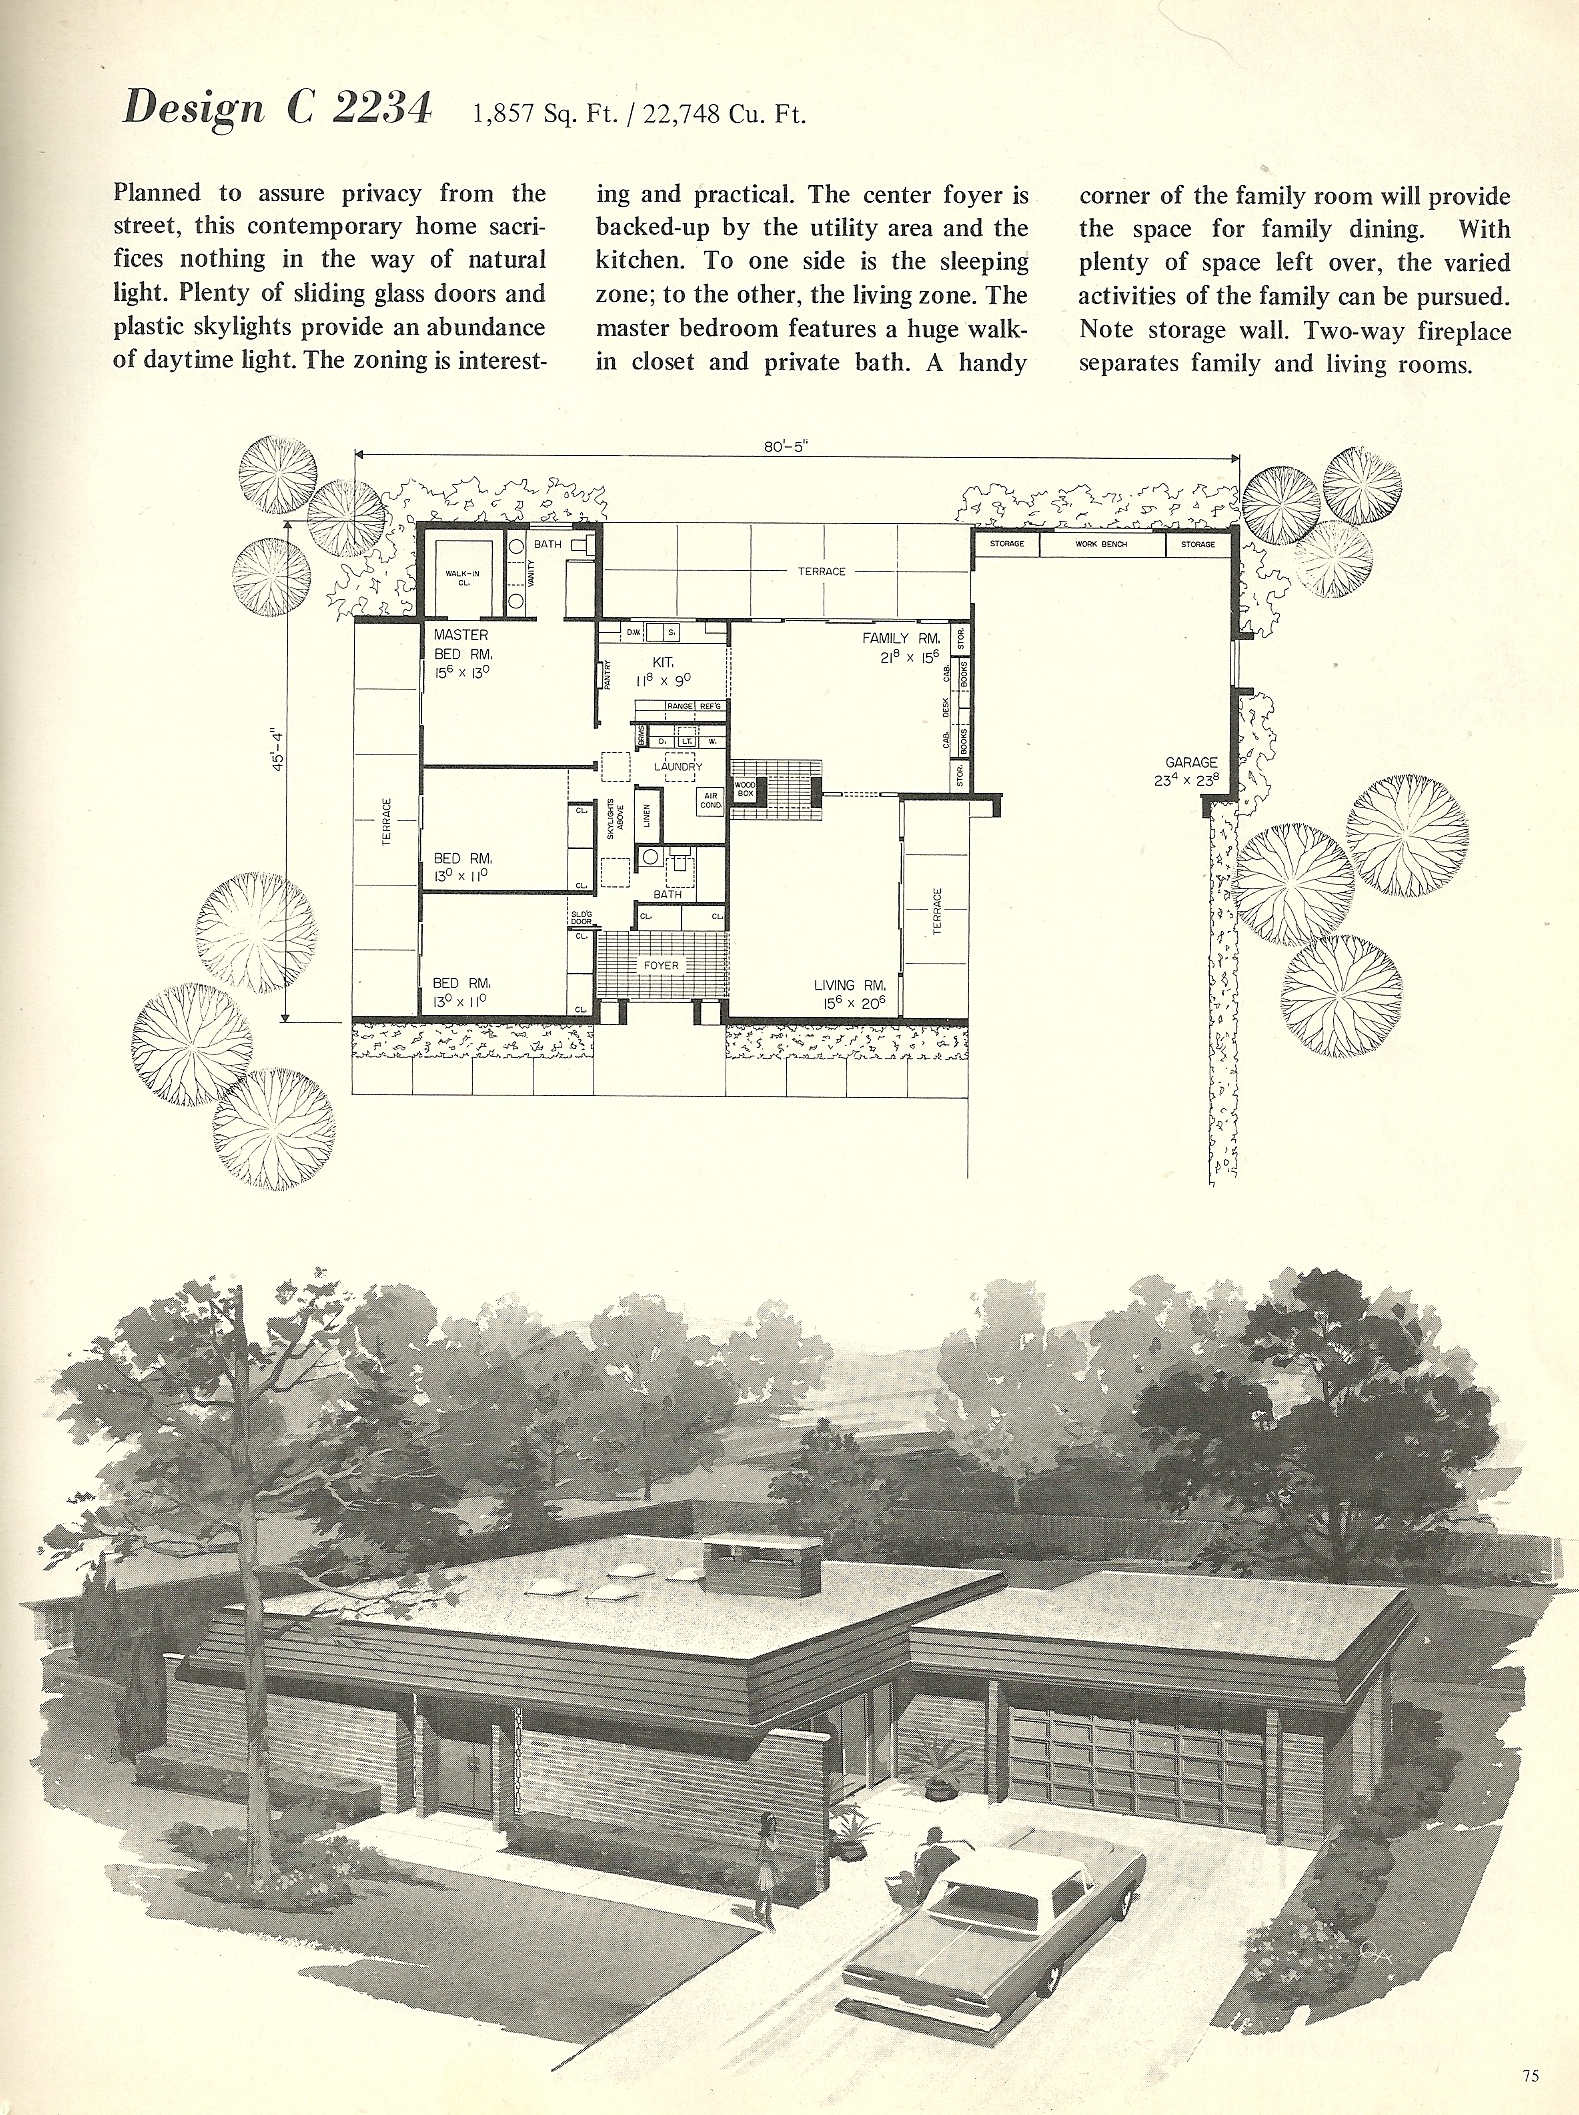 Vintage house plans 2234 antique alter ego for Mid century modern blueprints